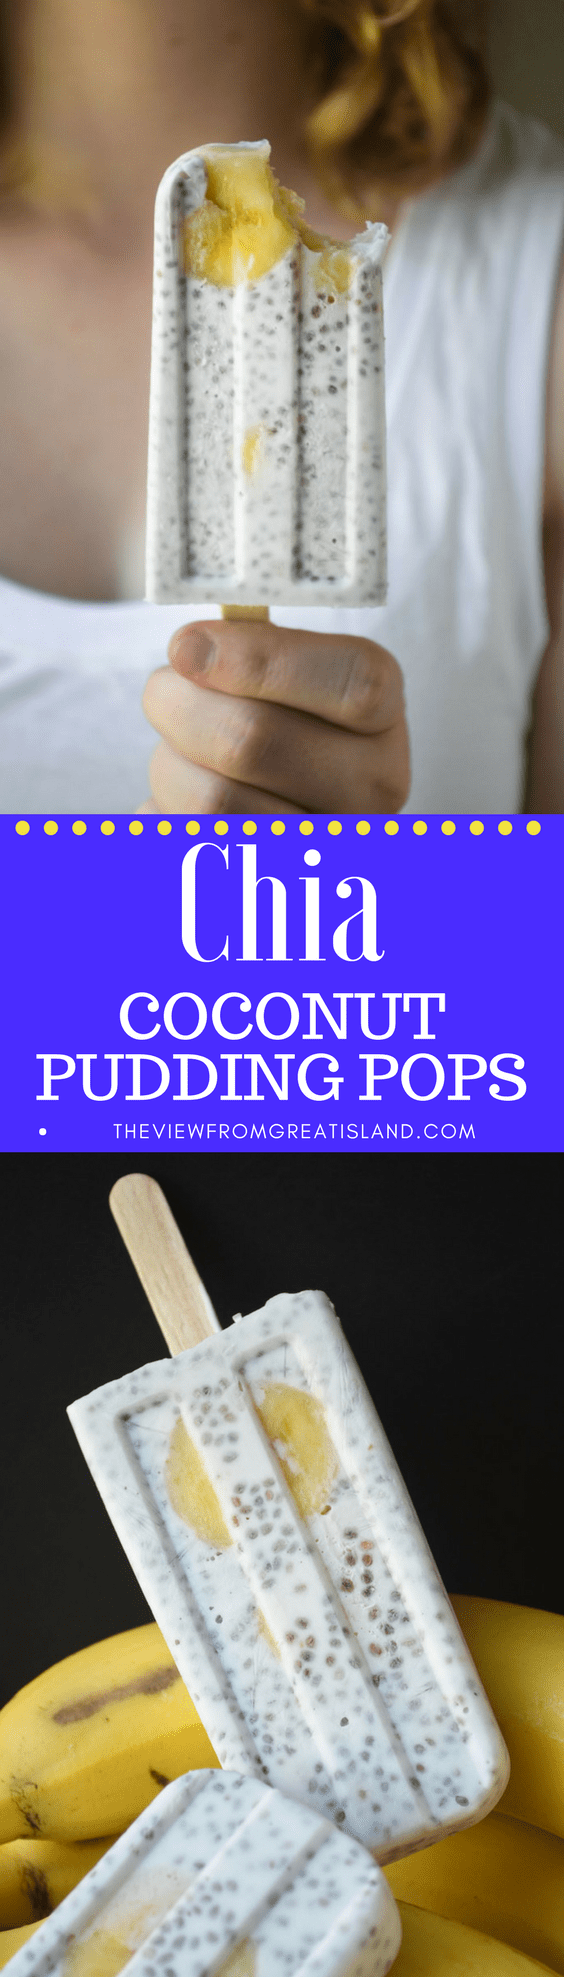 Chia Coconut Pudding Popsicles ~ a refreshingly delicious and healthy way to start the day, these vegan breakfast popsicles are worth getting out of bed for! #icecream #breakfast #healthypopsicles #healthydessert #healthykidsdessert